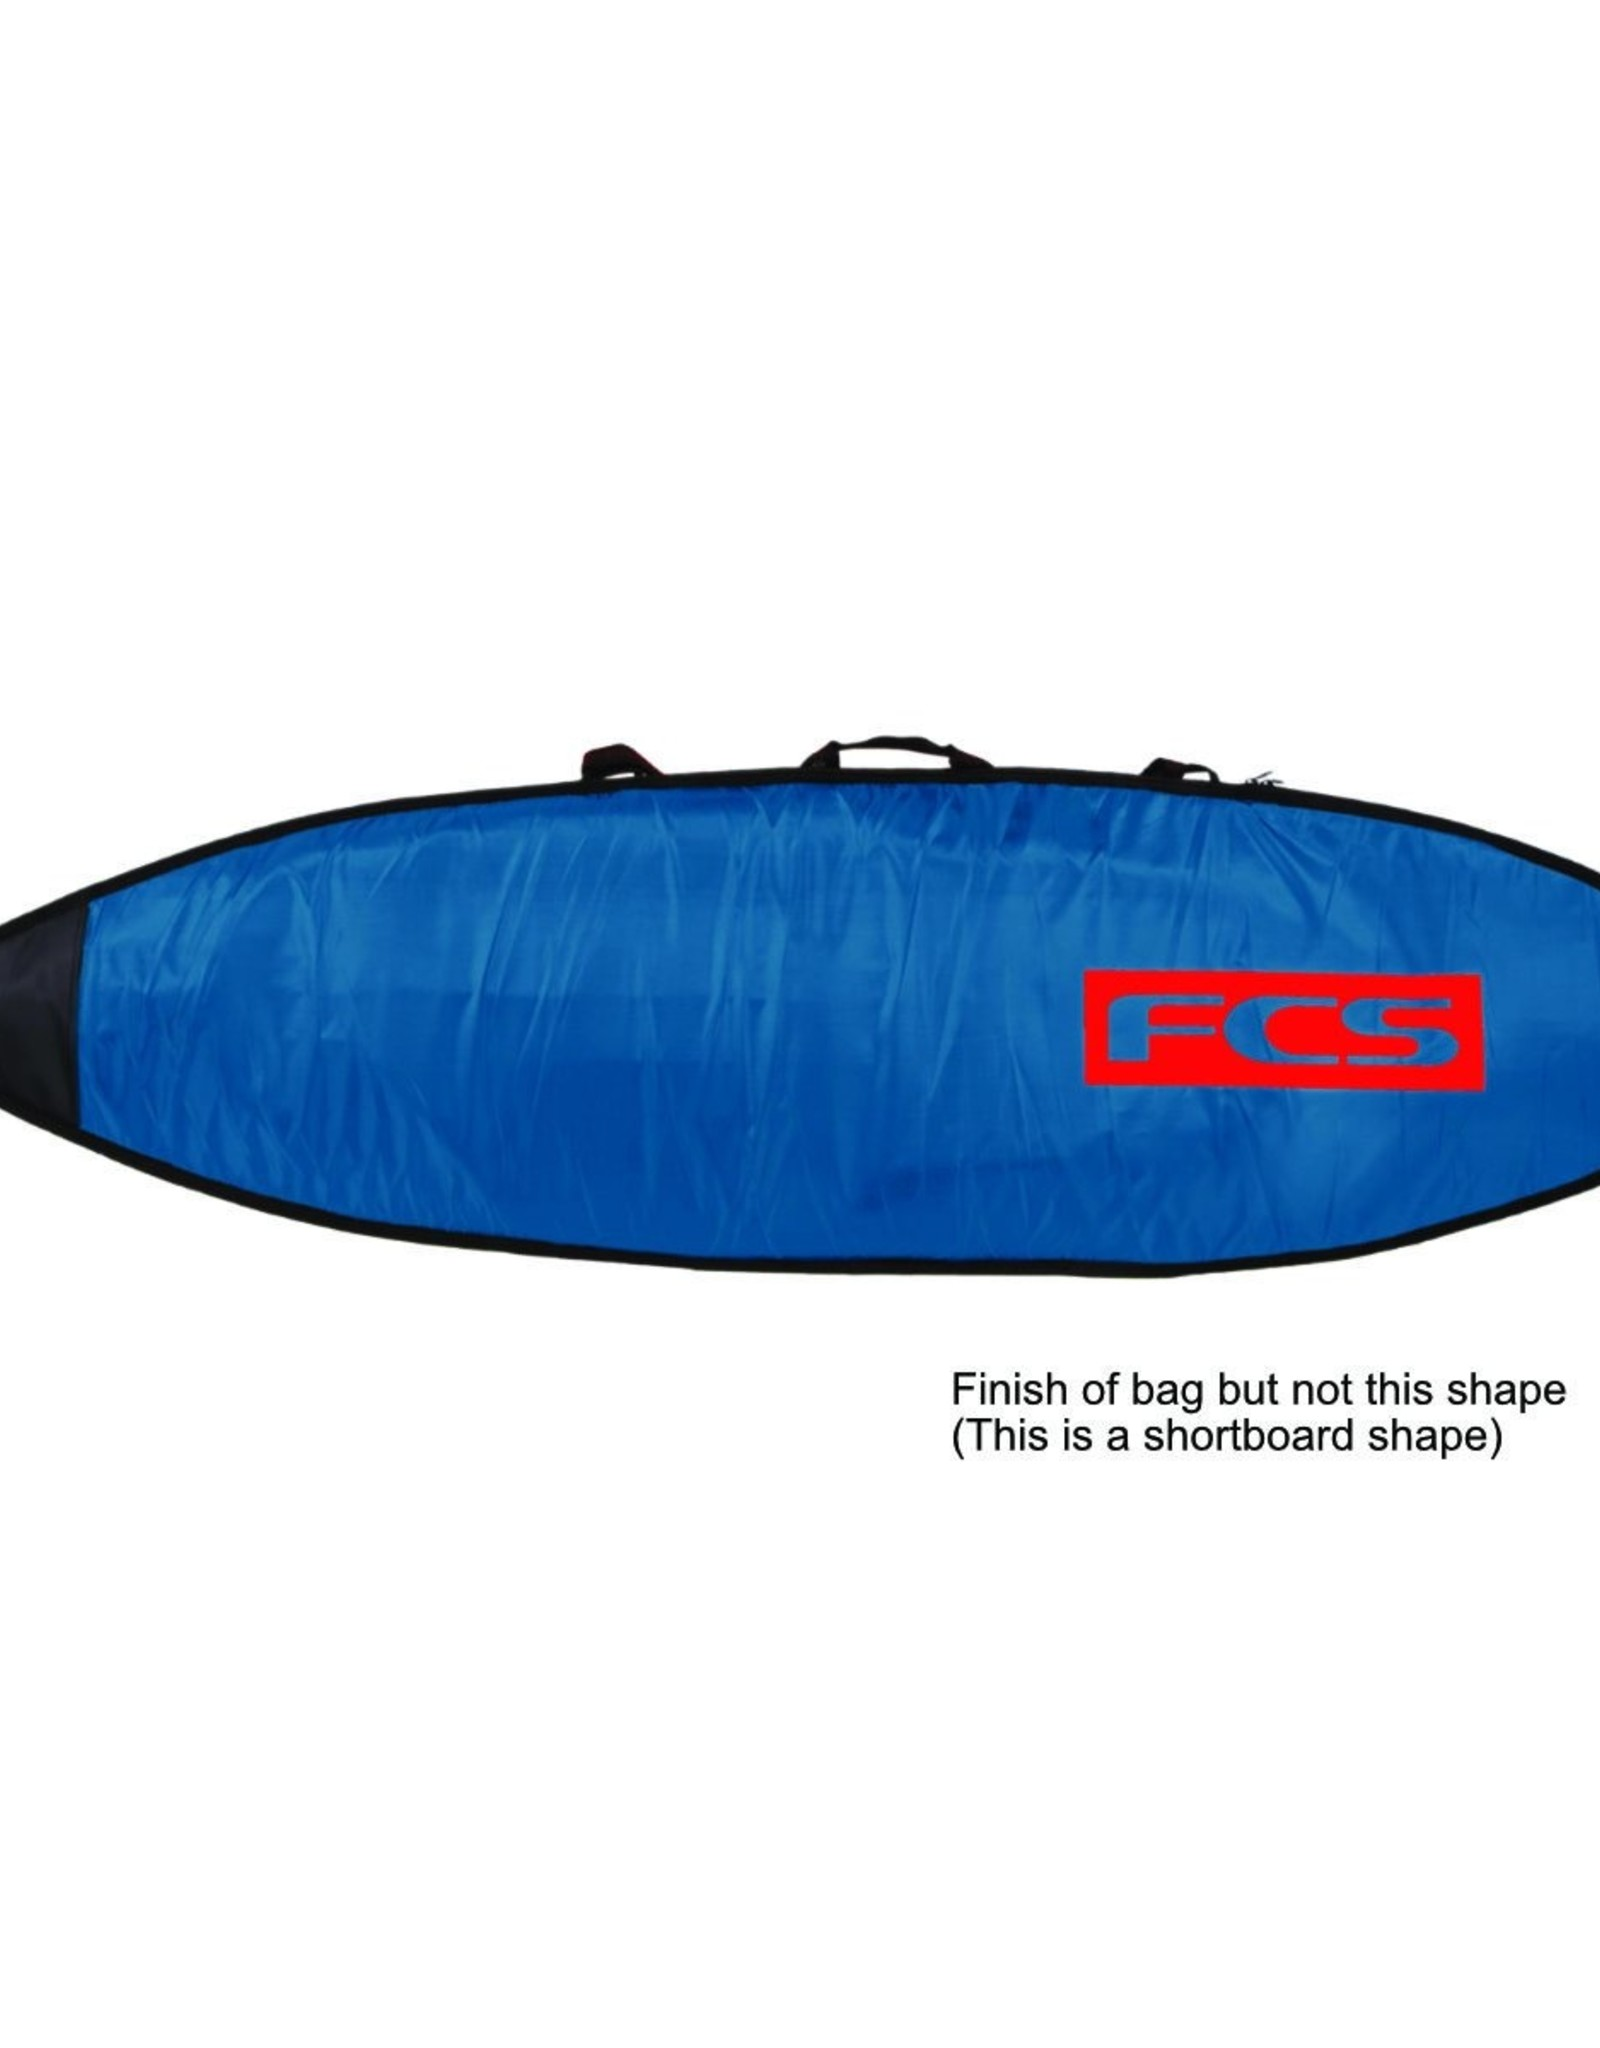 FCS FCS Classic Funboard Bags 7 ft 6 in Steel-Blue White